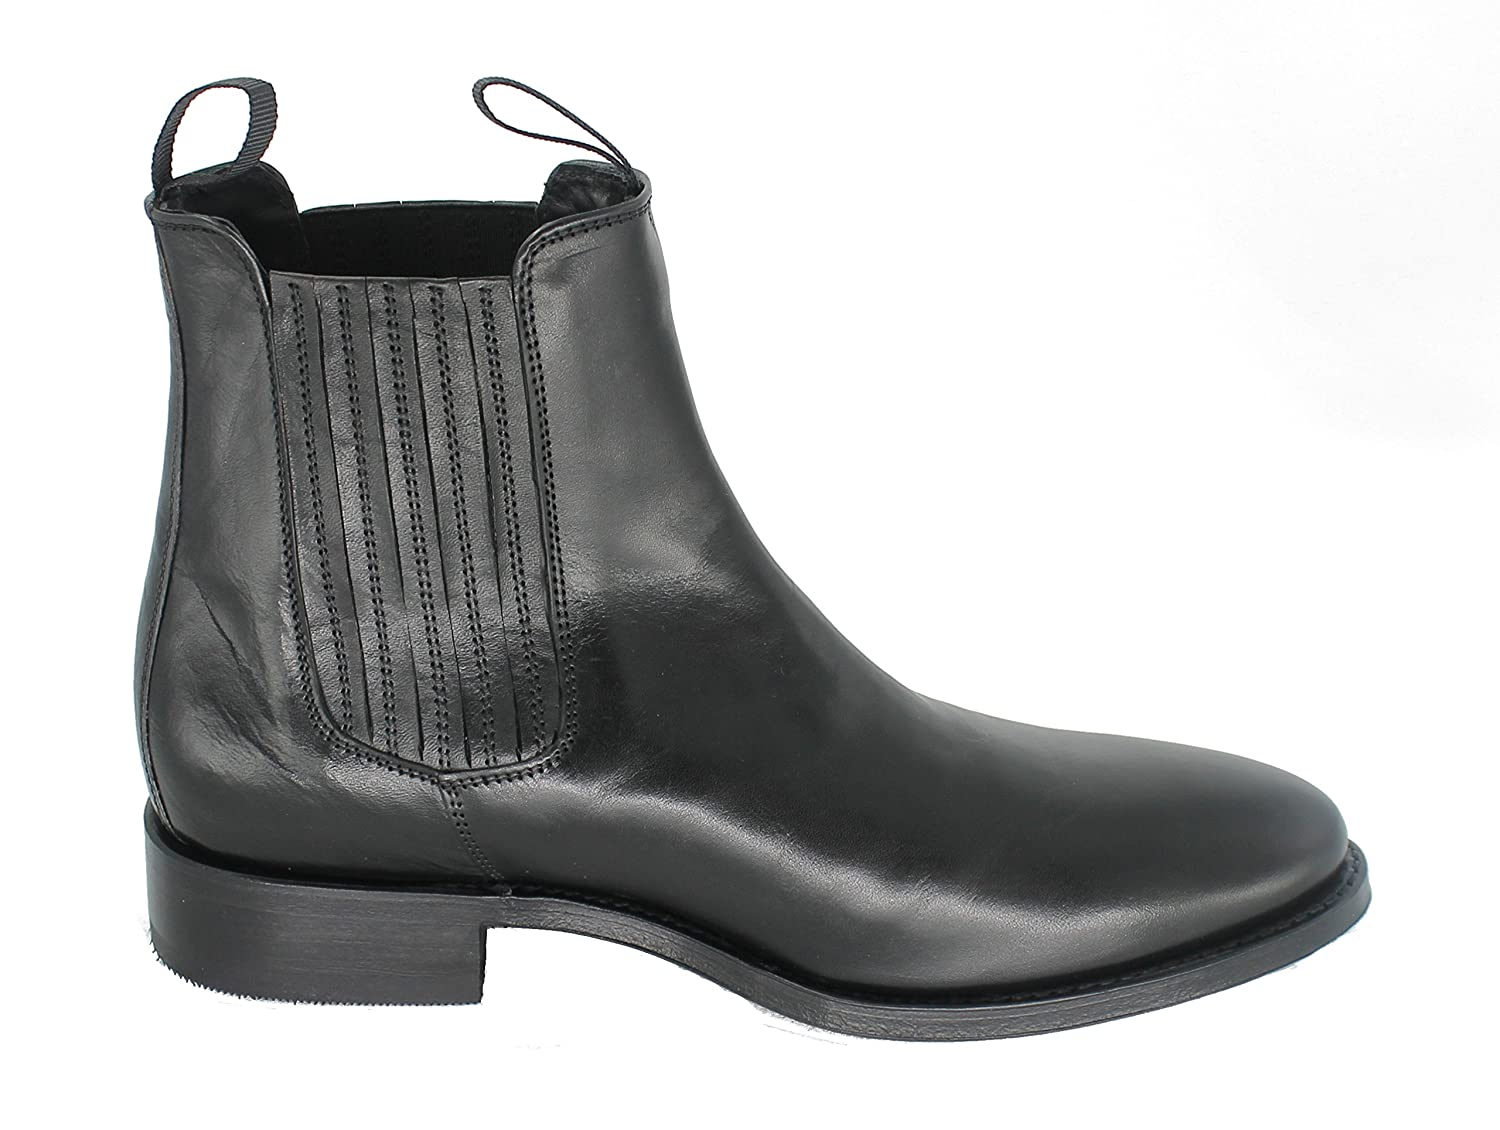 Sendra Boots Men's 11336 Kass Clear Negro Chelsea Boots Size: 11 UK:  Amazon.co.uk: Shoes & Bags